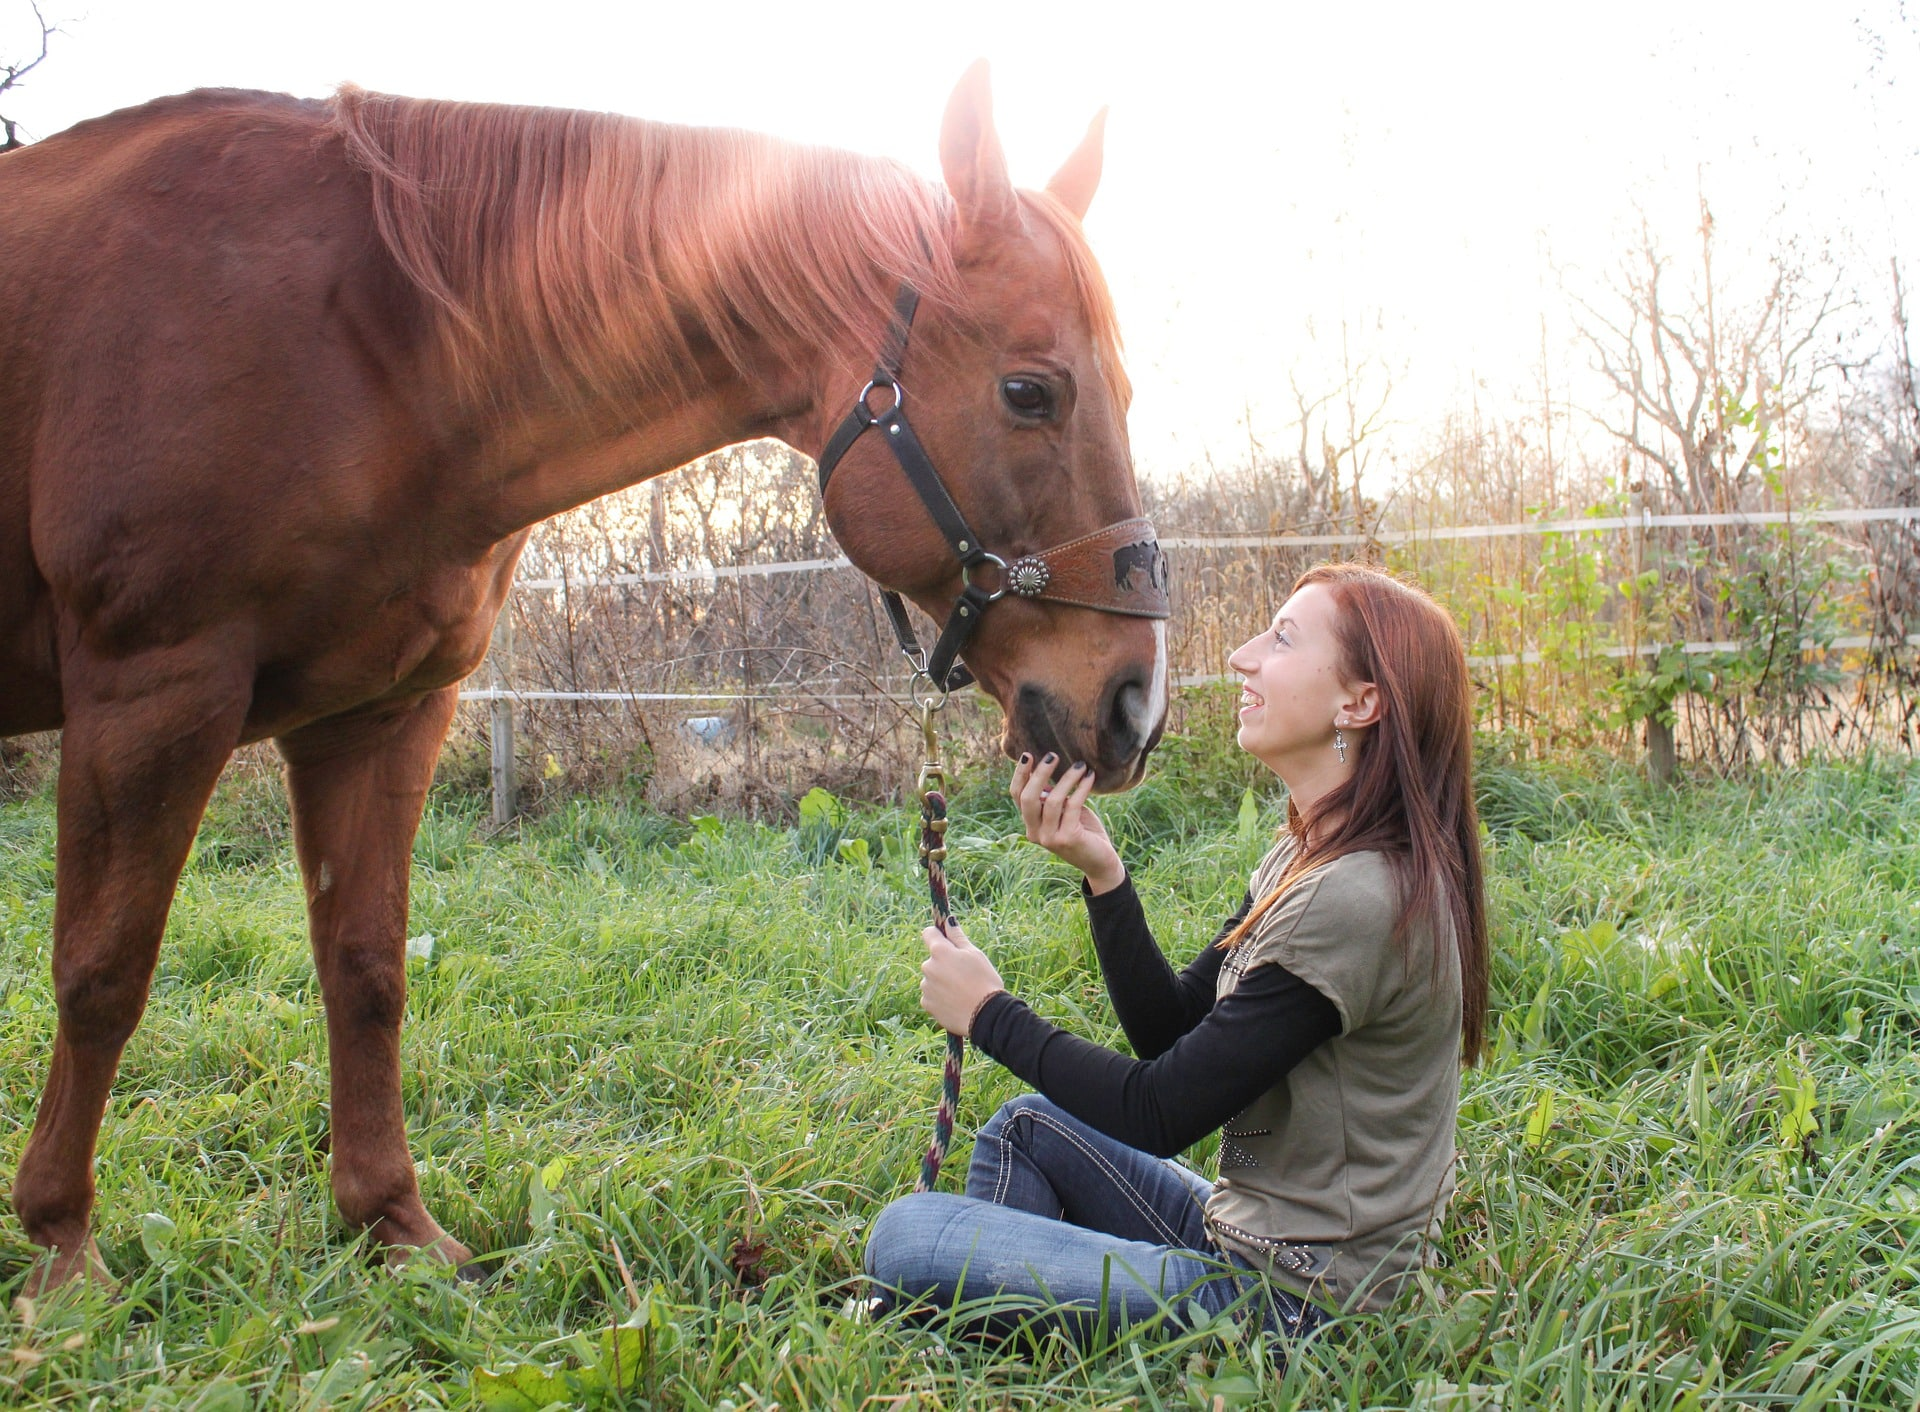 Should I buy my daughter a horse? horses are the best stress relief